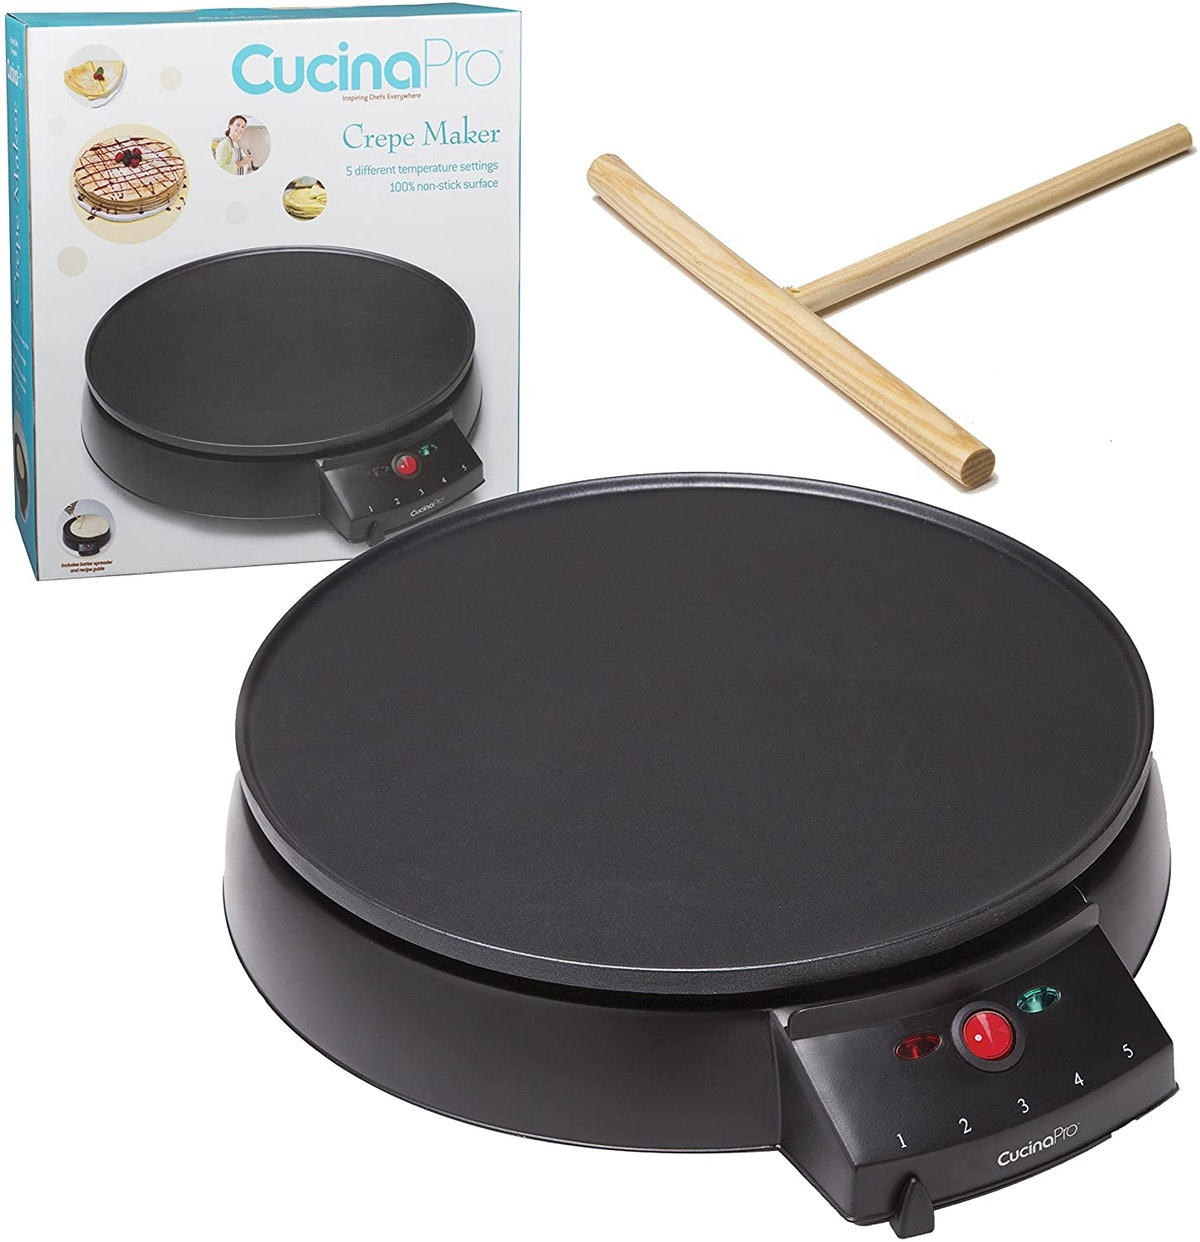 CucinaPro 12-Inch Non-Stick Crepe Maker with Spreader and Recipes